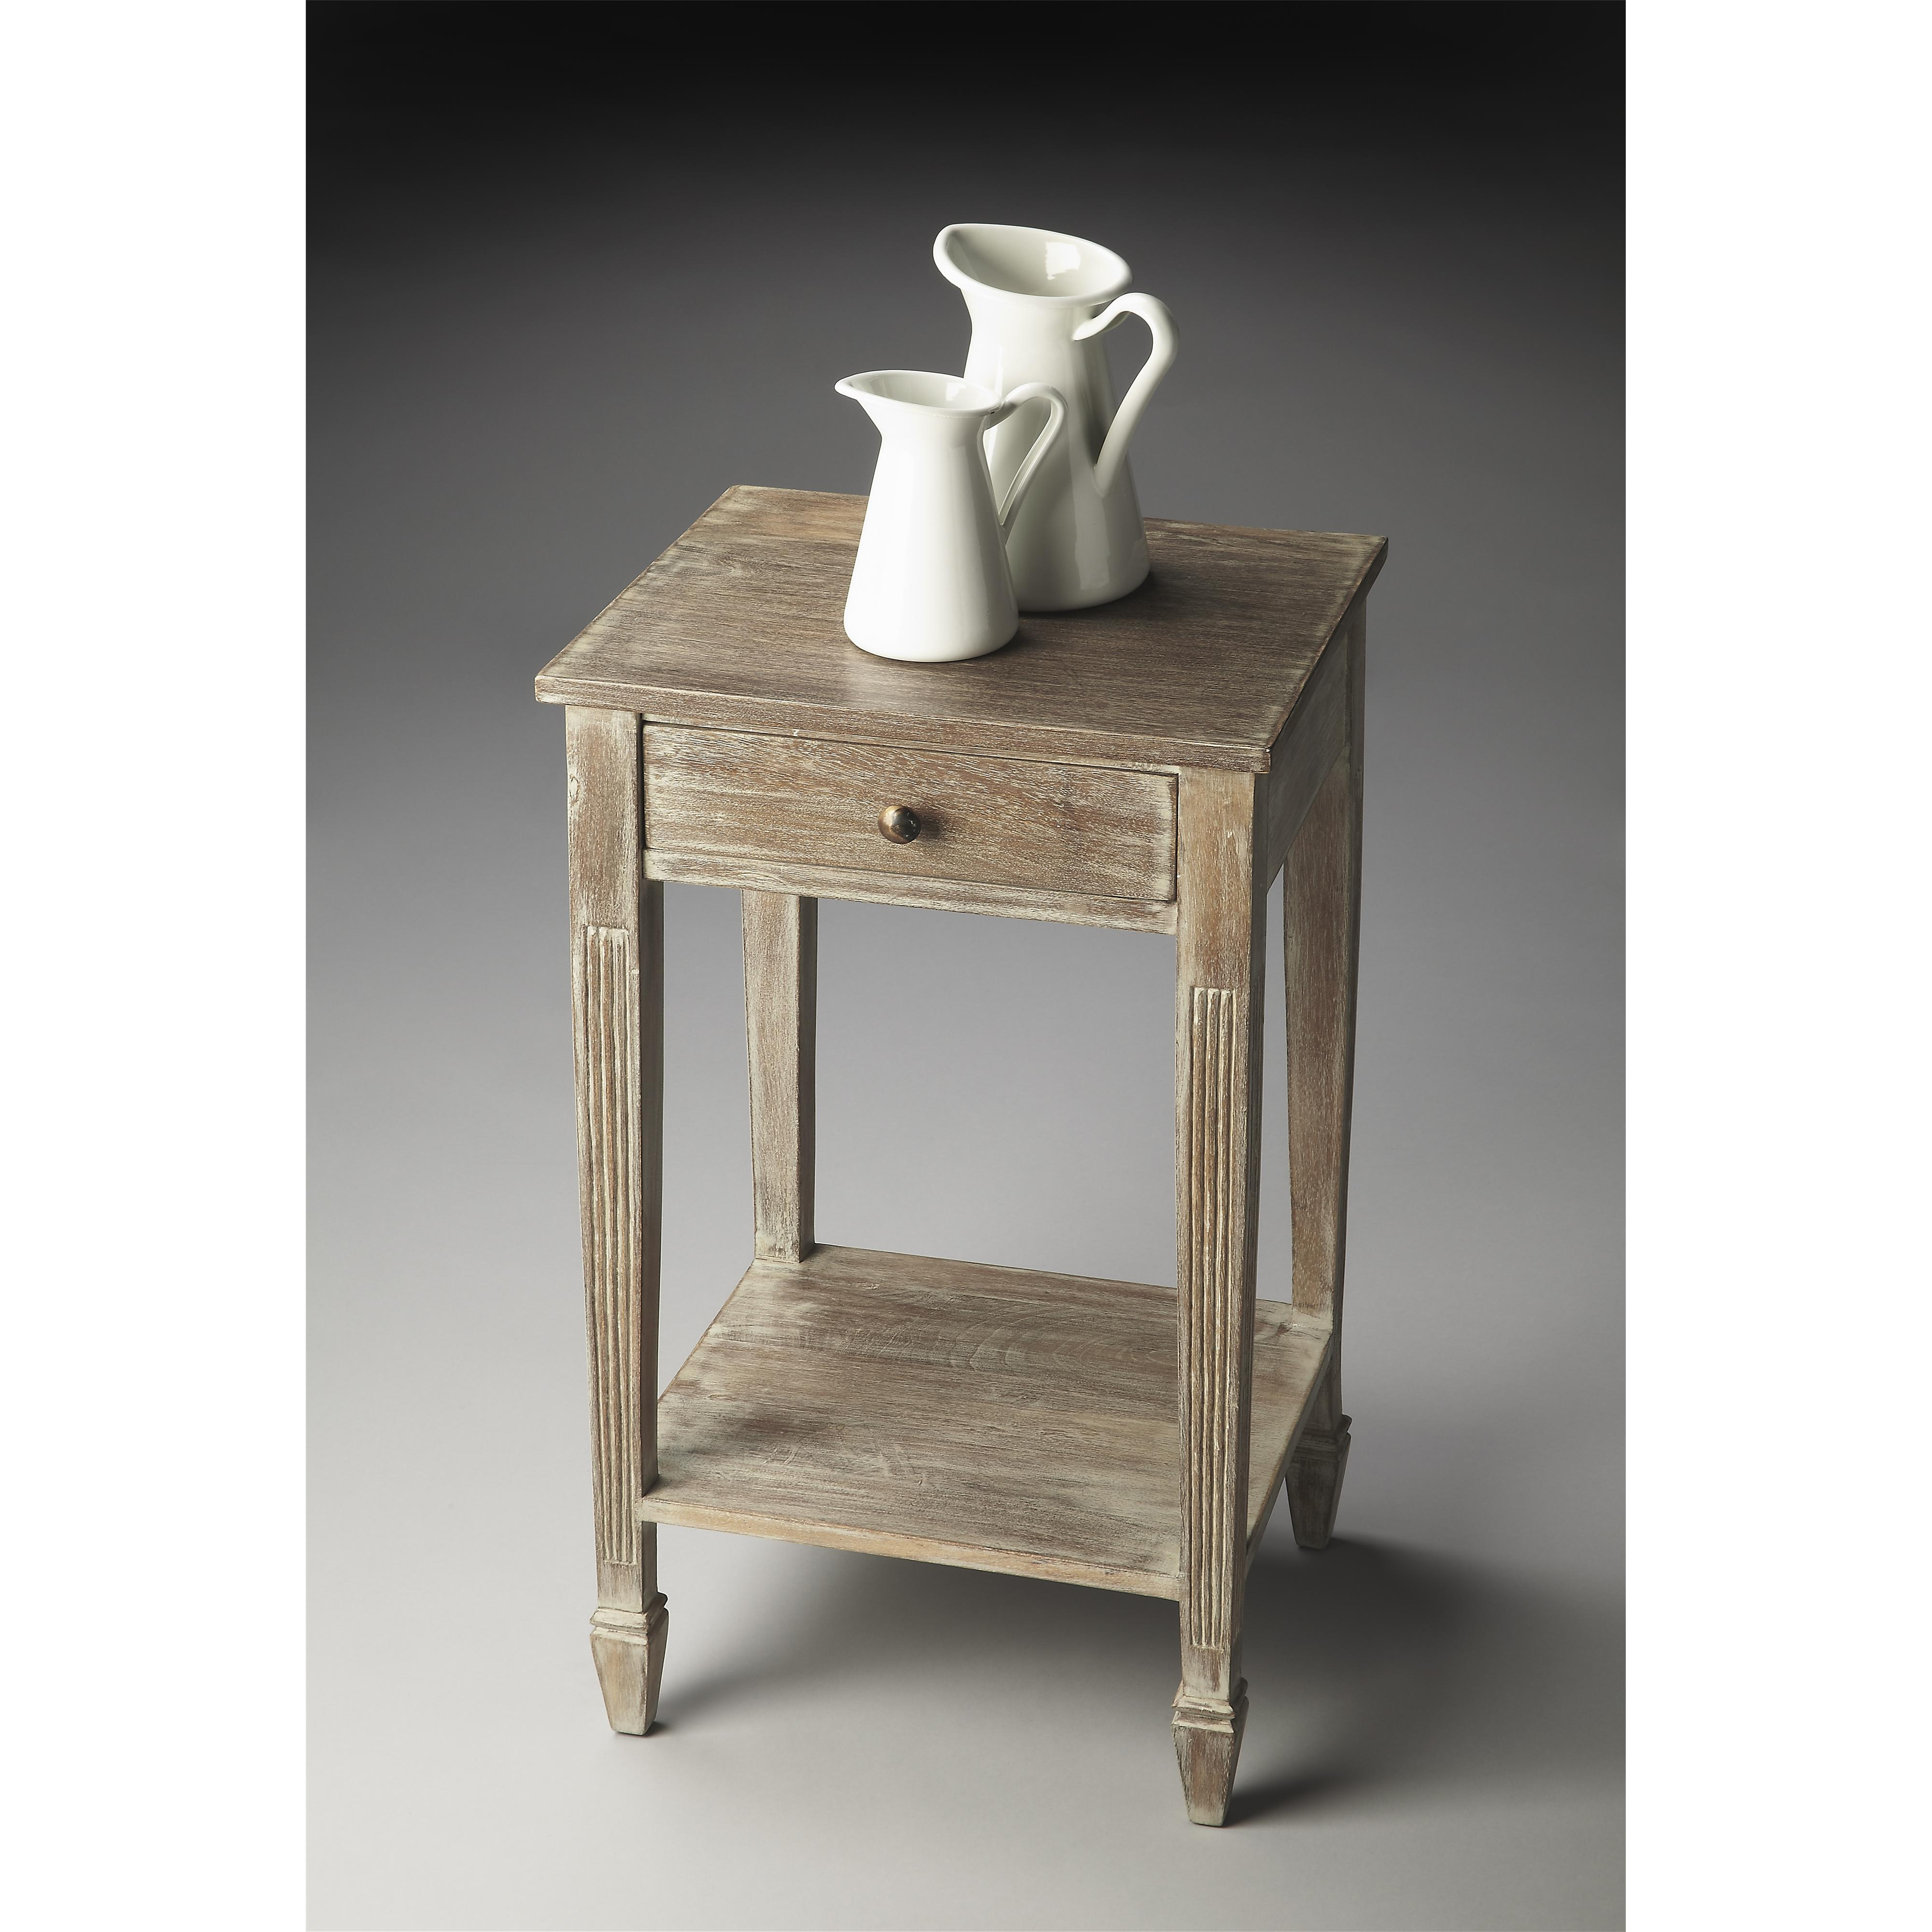 Butler Specialty Company Artifacts Side Table - Item Number: 2291290